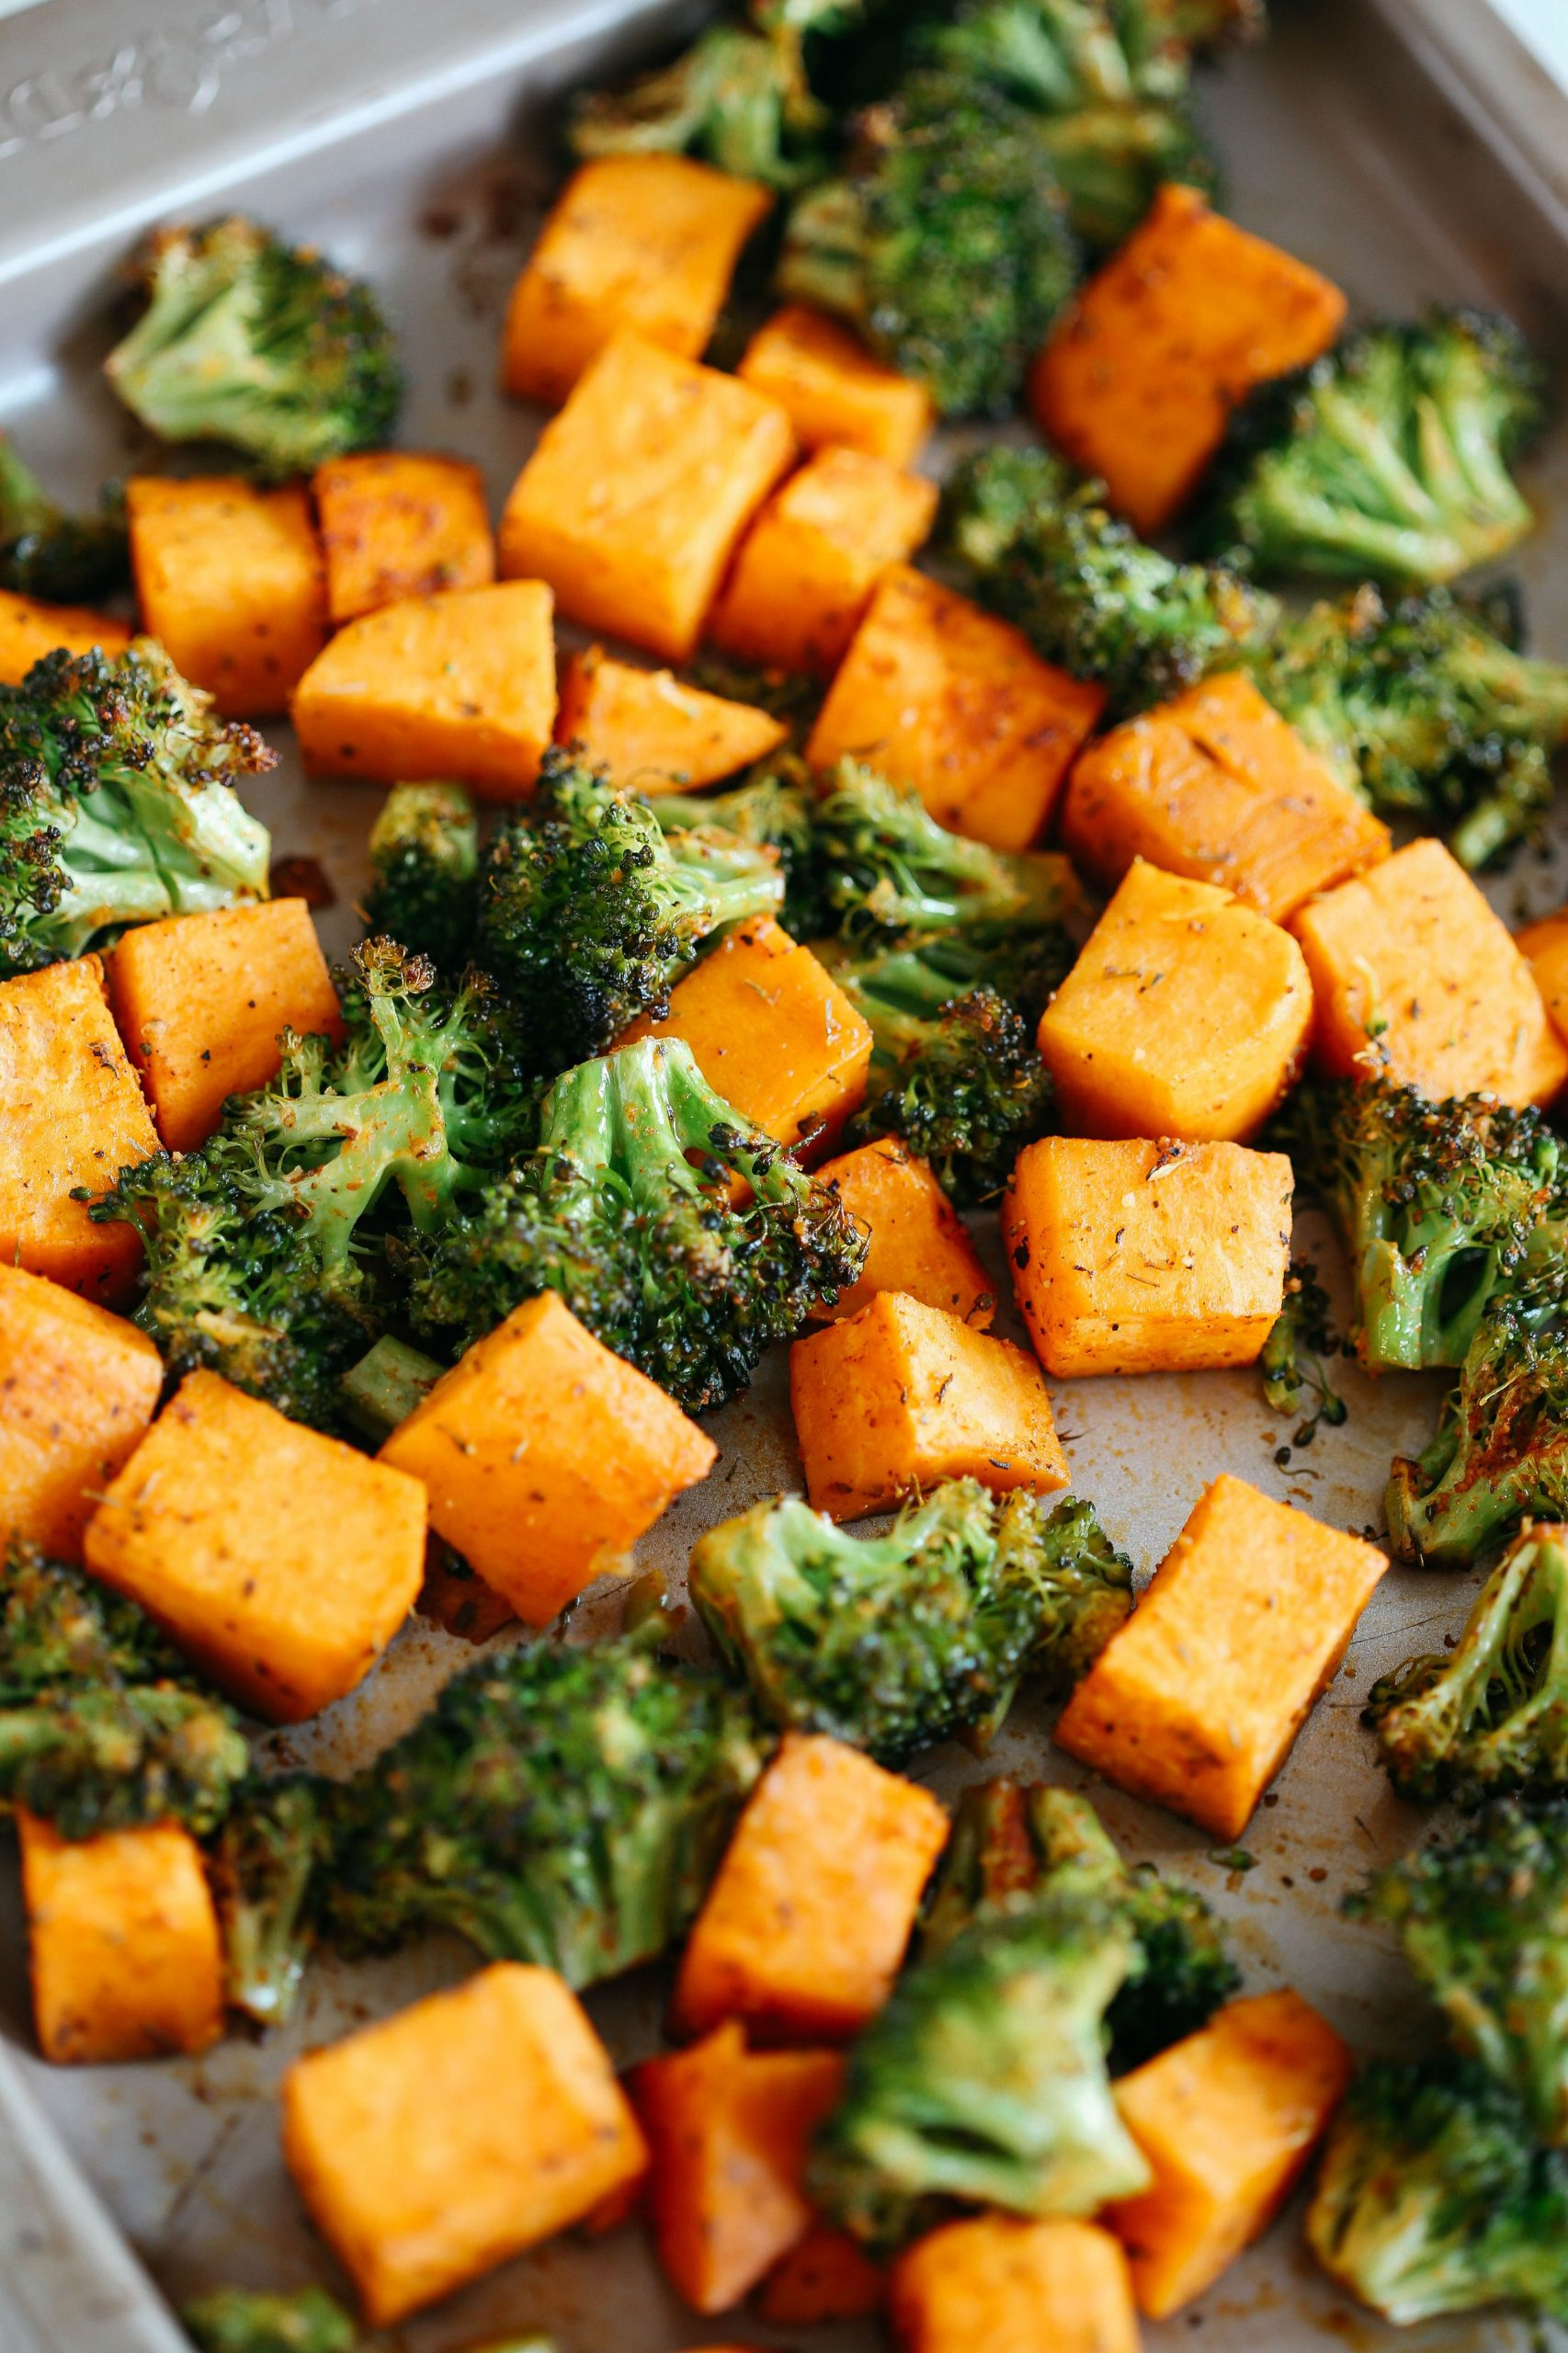 Perfectly Roasted Broccoli & Sweet Potatoes - Recipes Vegetable Sides